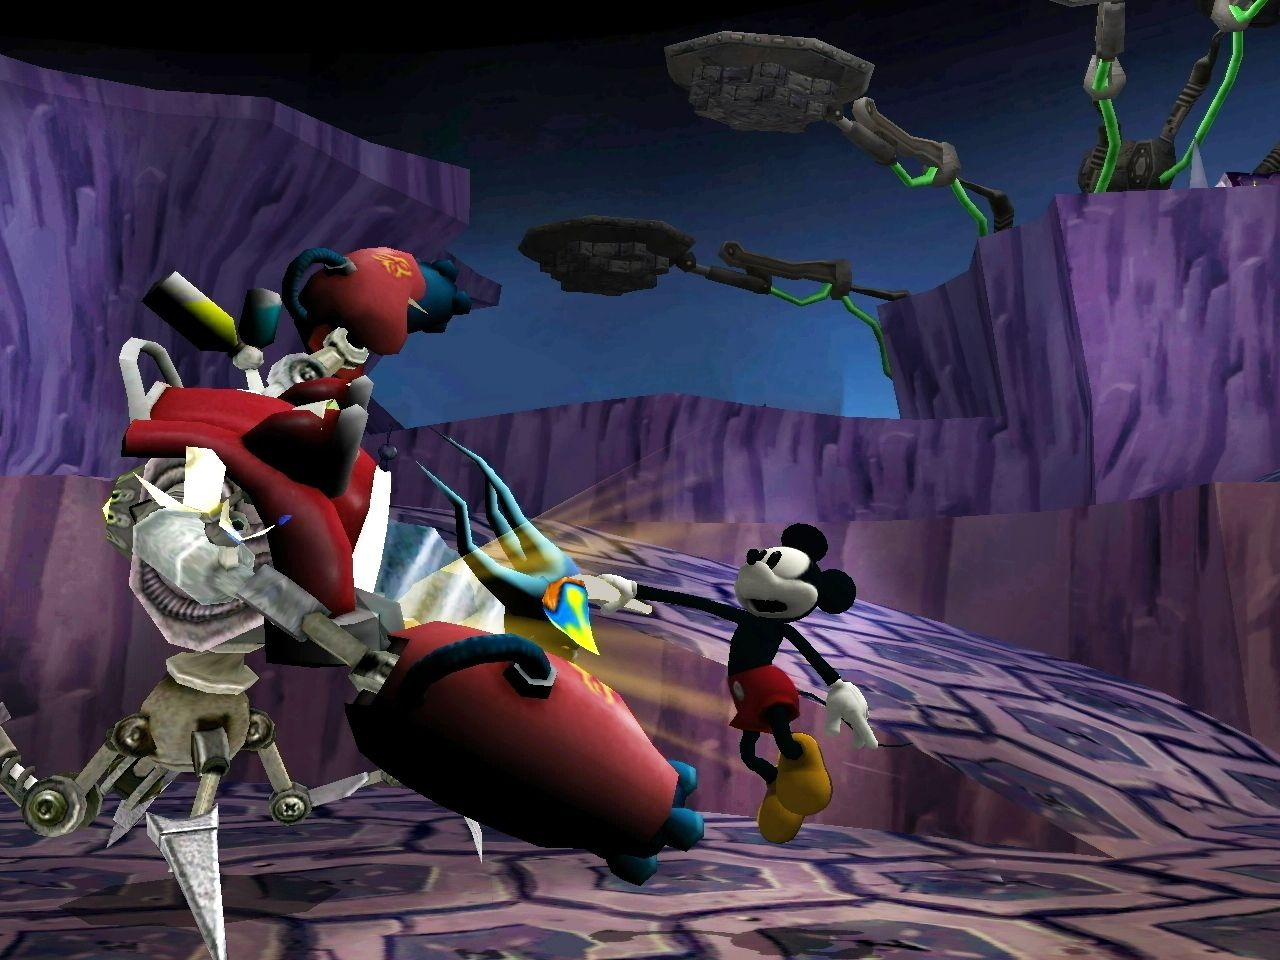 http://image.jeuxvideo.com/images/wi/e/p/epic-mickey-wii-009.jpg